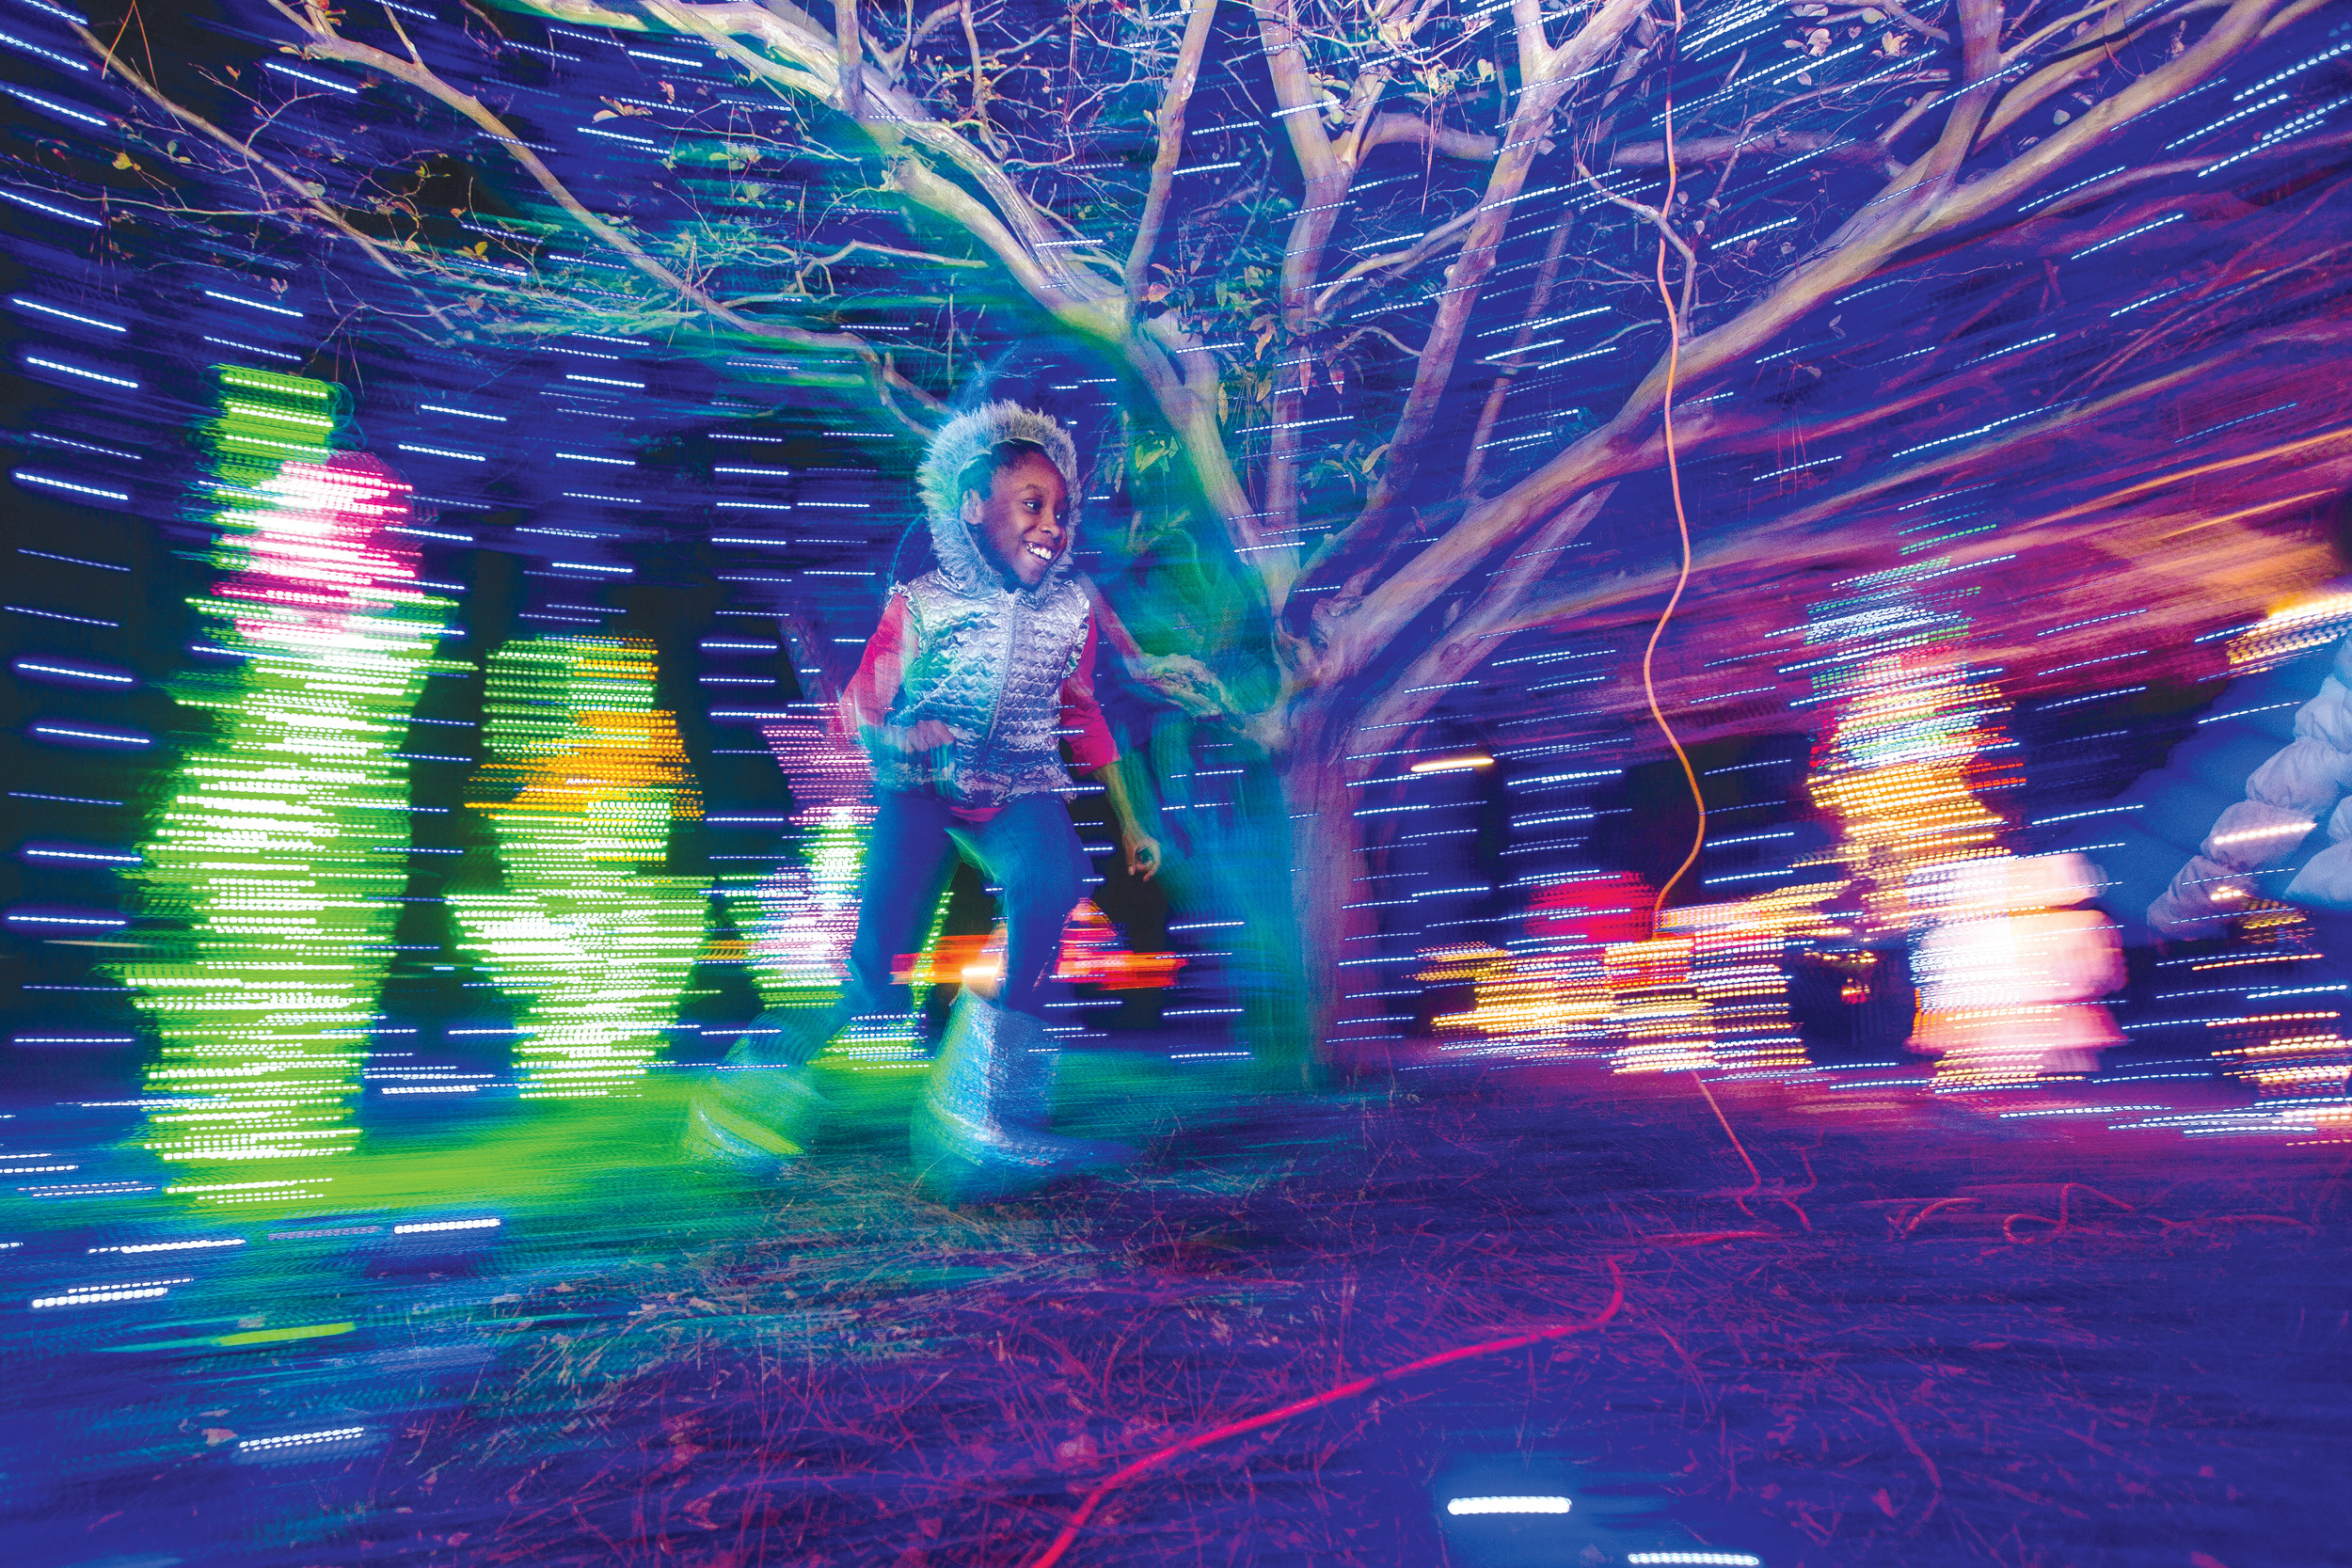 MICAH GREEN / THE SUMTER ITEM Desariyah Walcott runs circles under a tree covered in lights at the 30th-annual Fantasy of Lights kickoff event at Swan Lake-Iris Gardens on Friday.